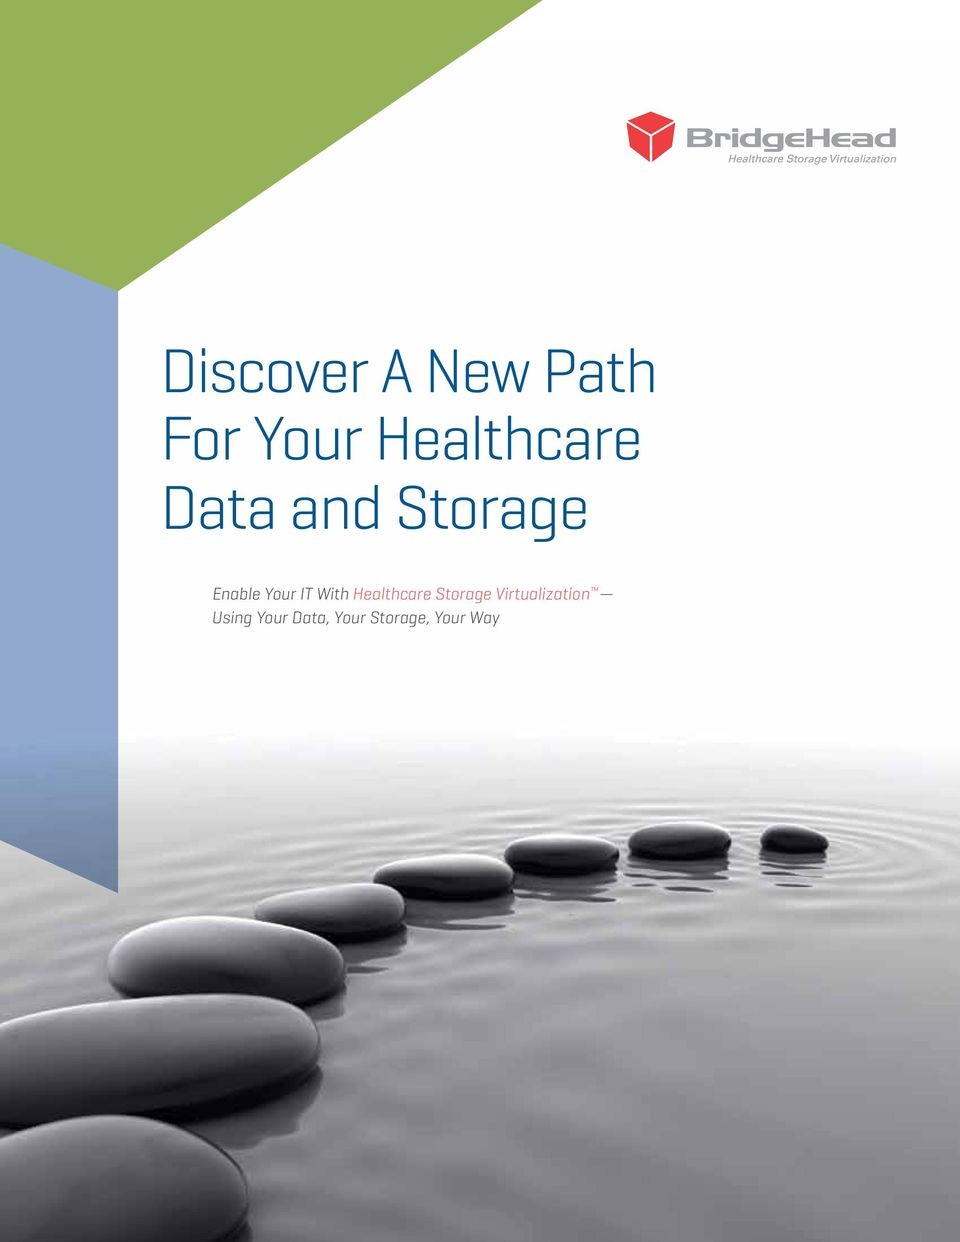 Your IT With Healthcare Storage